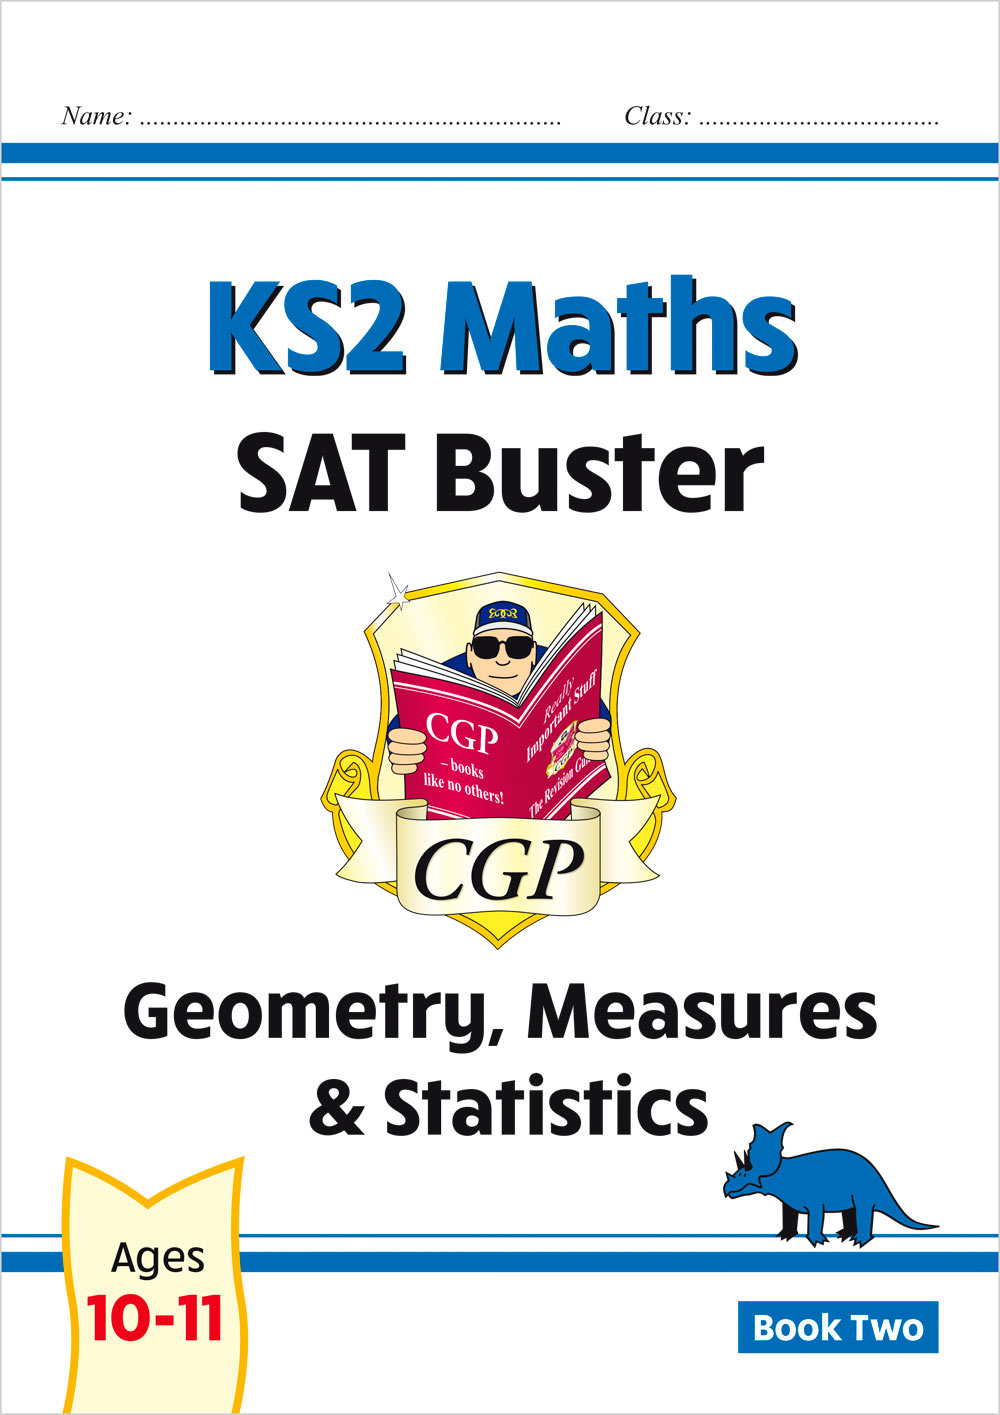 M6SMD222 - New KS2 Maths SAT Buster: Geometry, Measures & Statistics - Book 2 (for the 2021 tests)